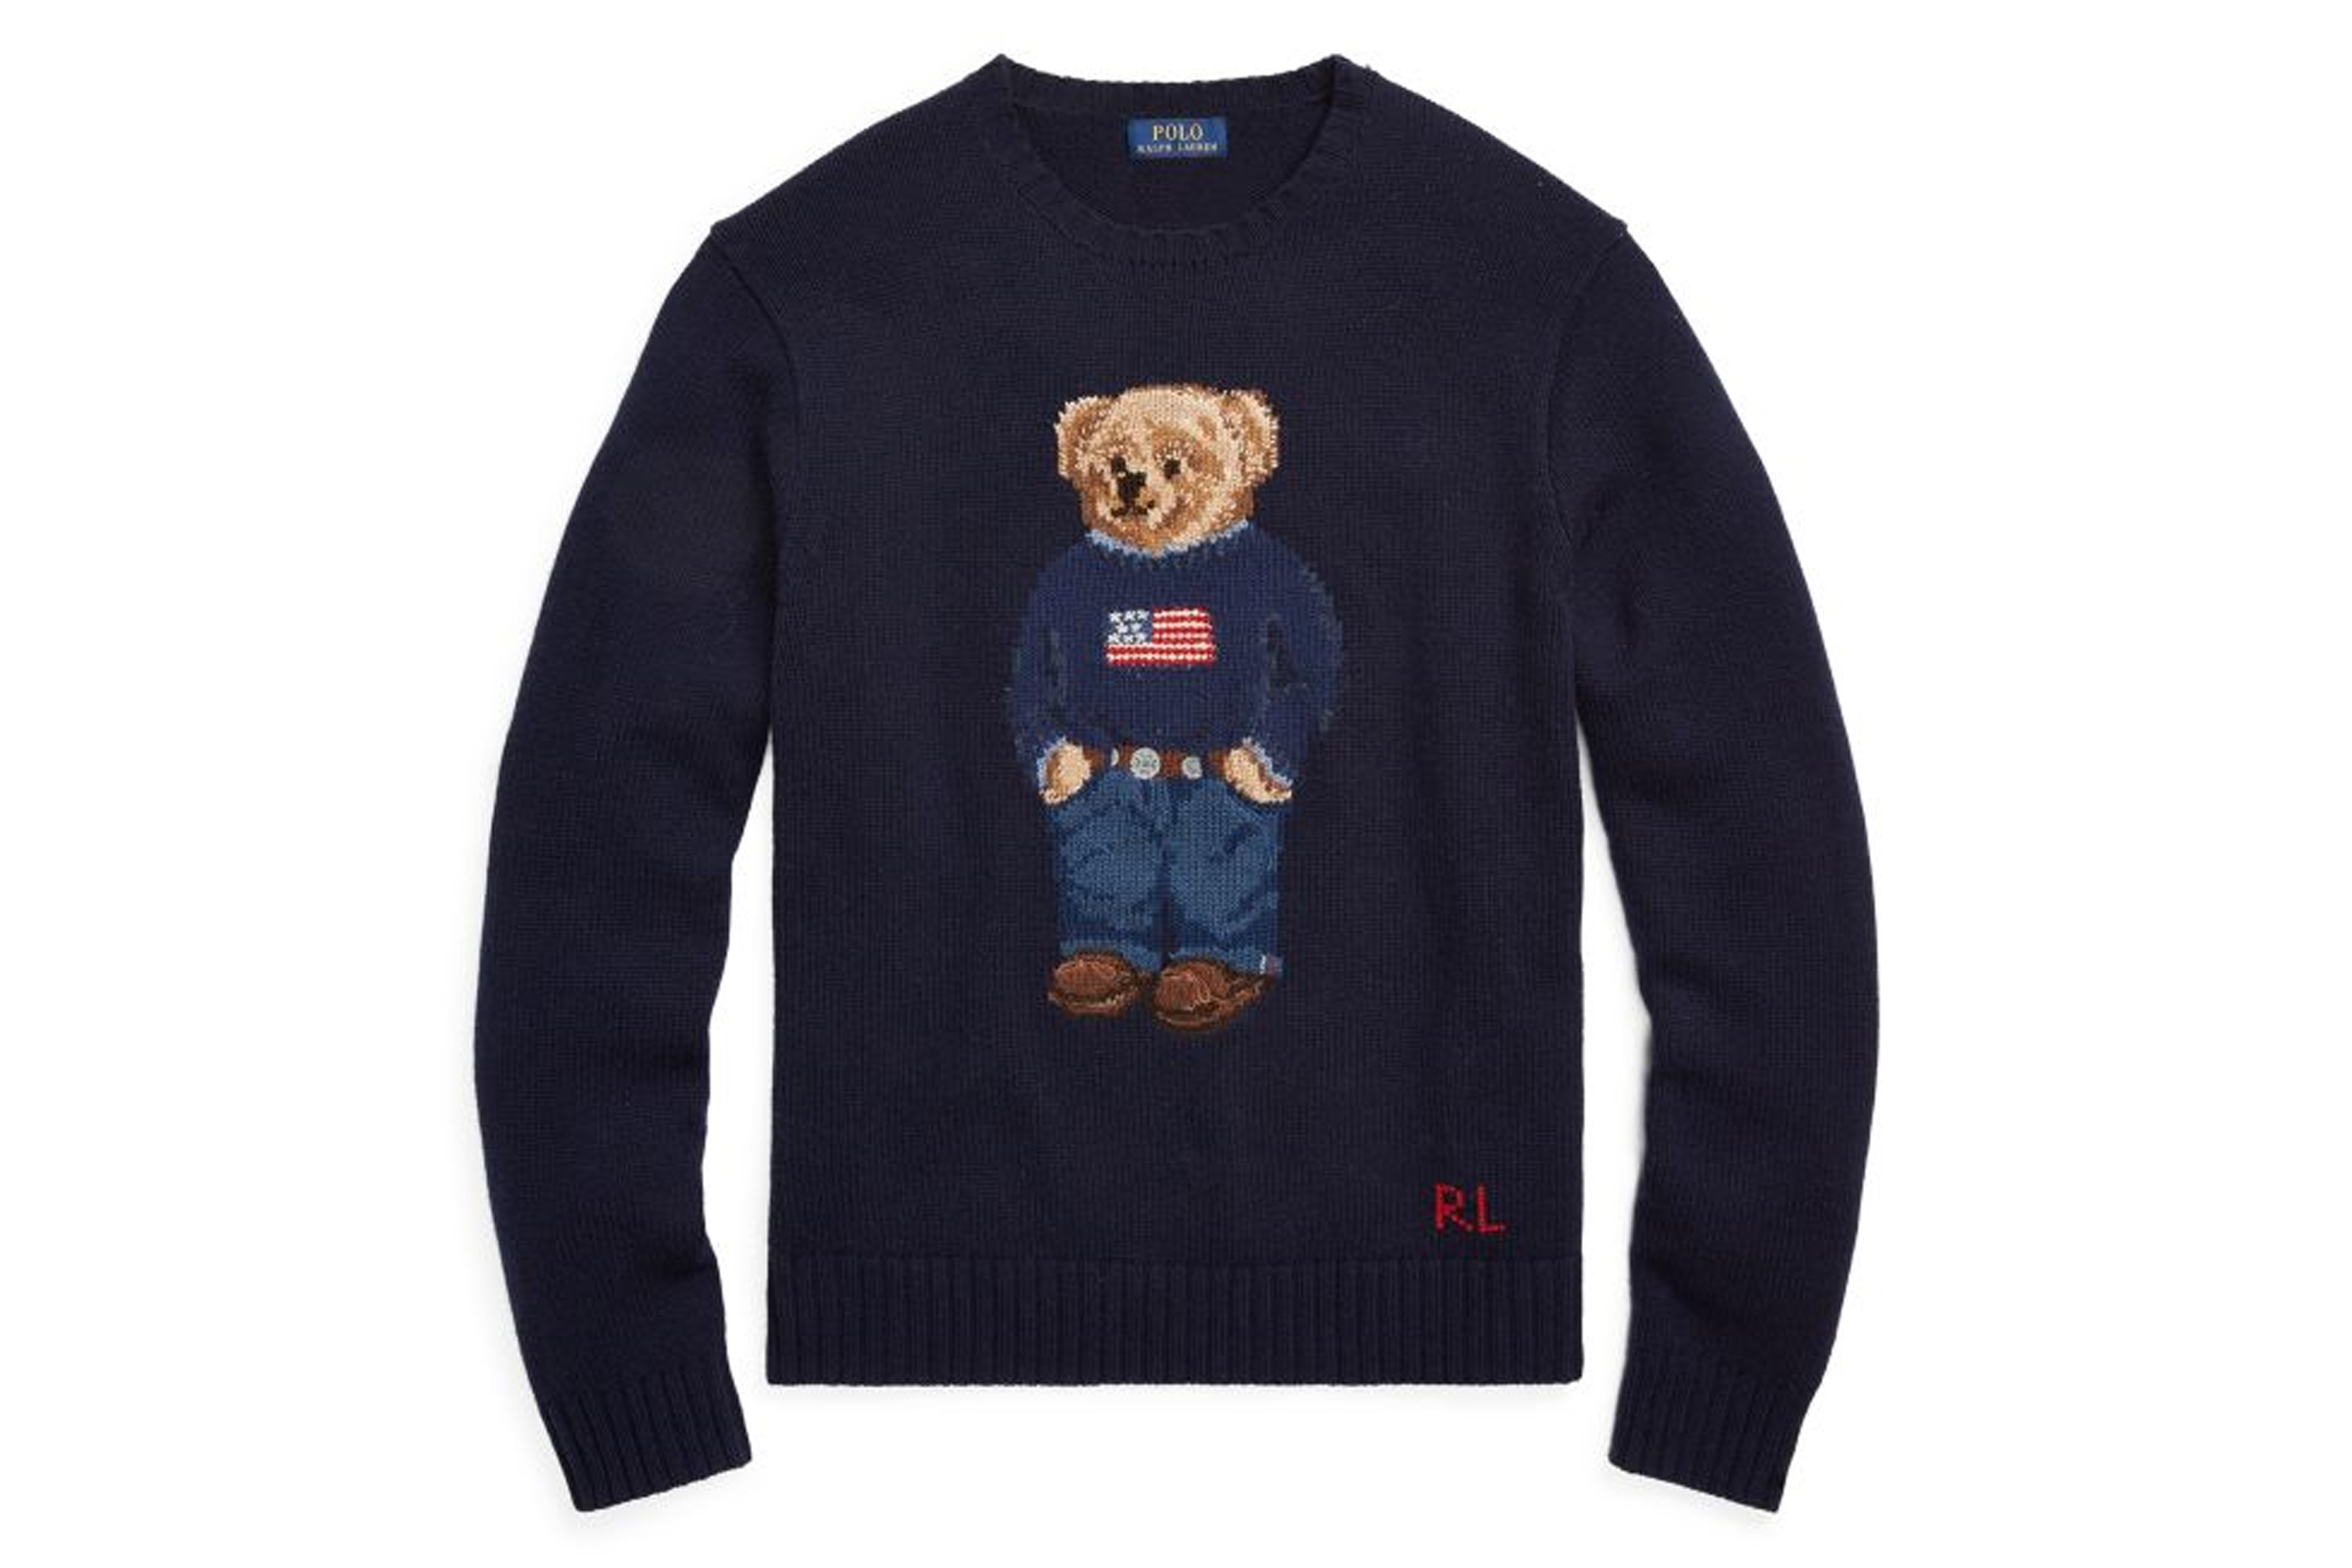 f30af3d2108 An Abridged History of The Polo Bear - Ralph Lauren Polo Bear ...